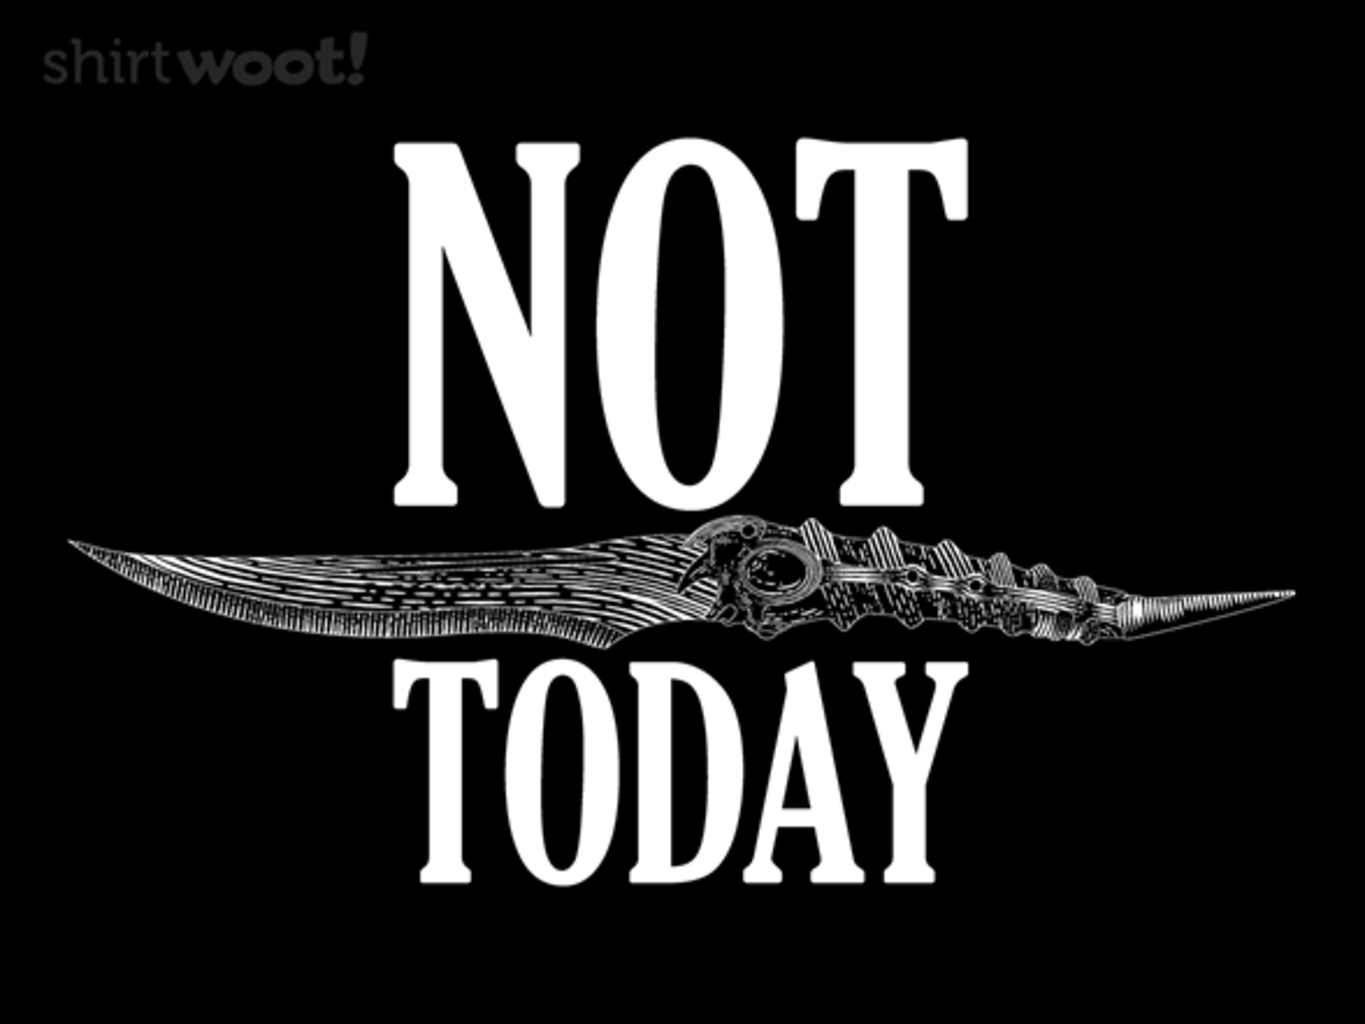 Woot!: Not Today